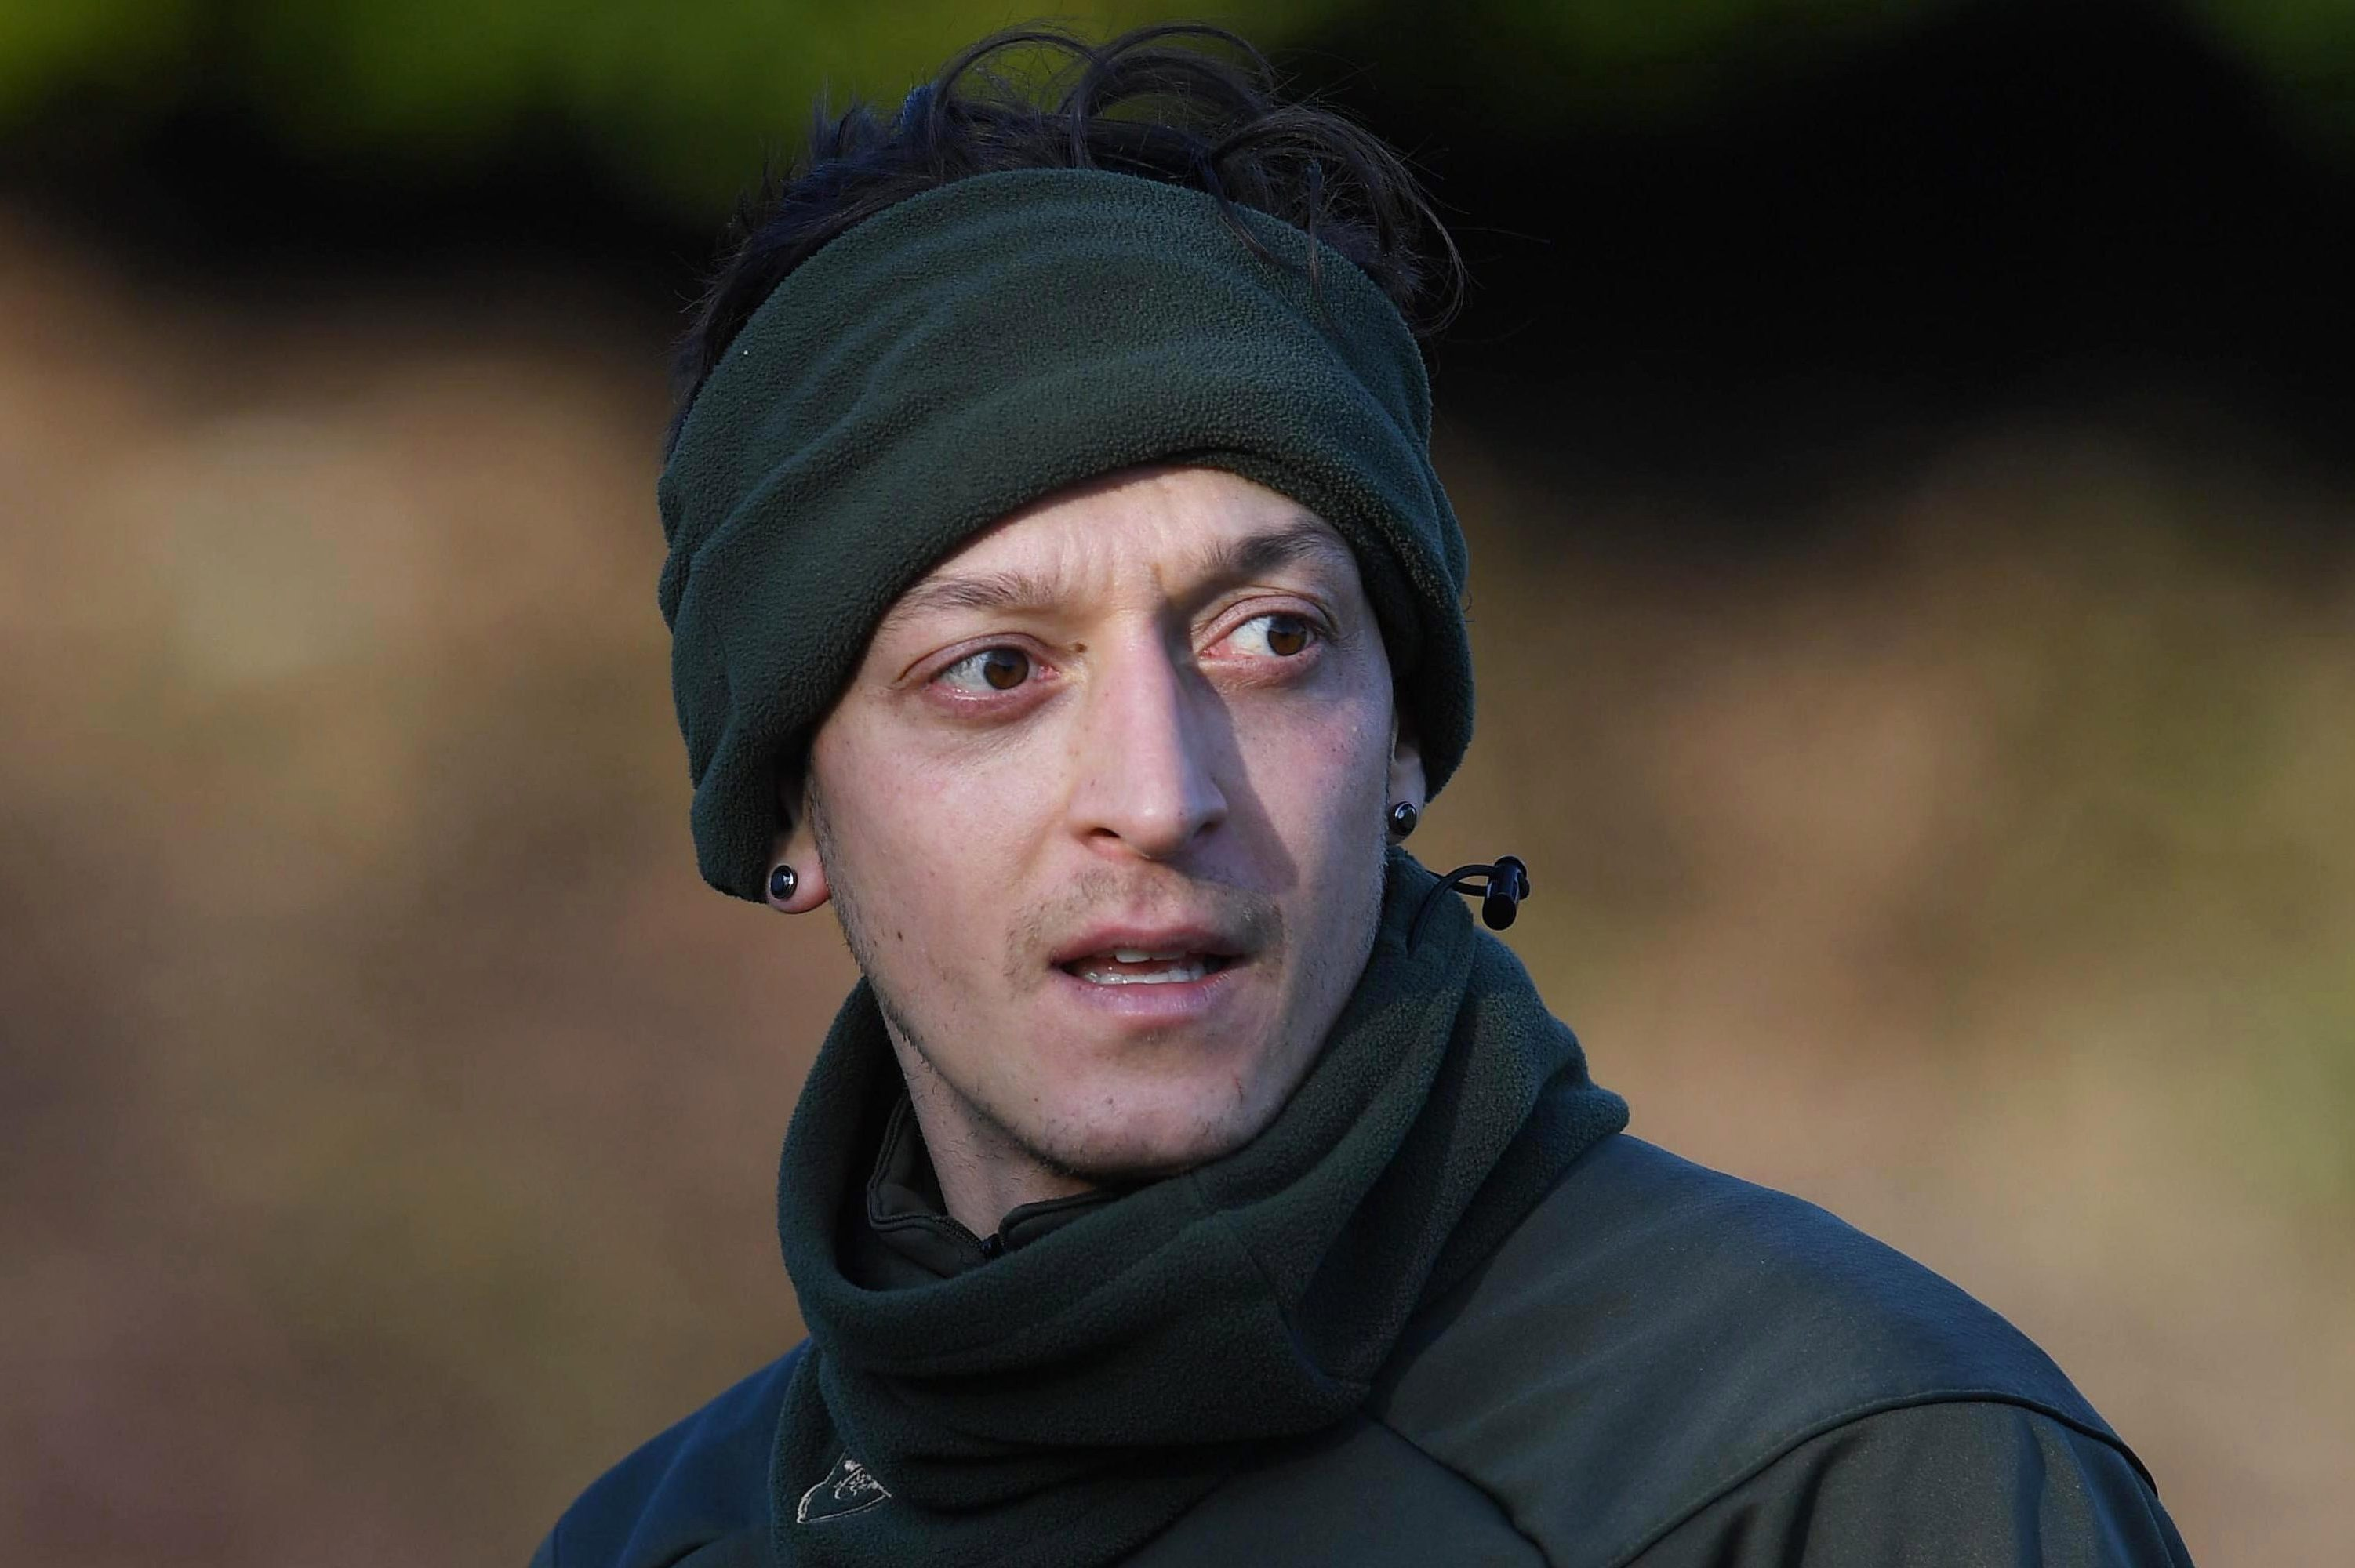 Arsenal 'tried to offload Ozil in January at cut-price rate' but nobody would pay his wages